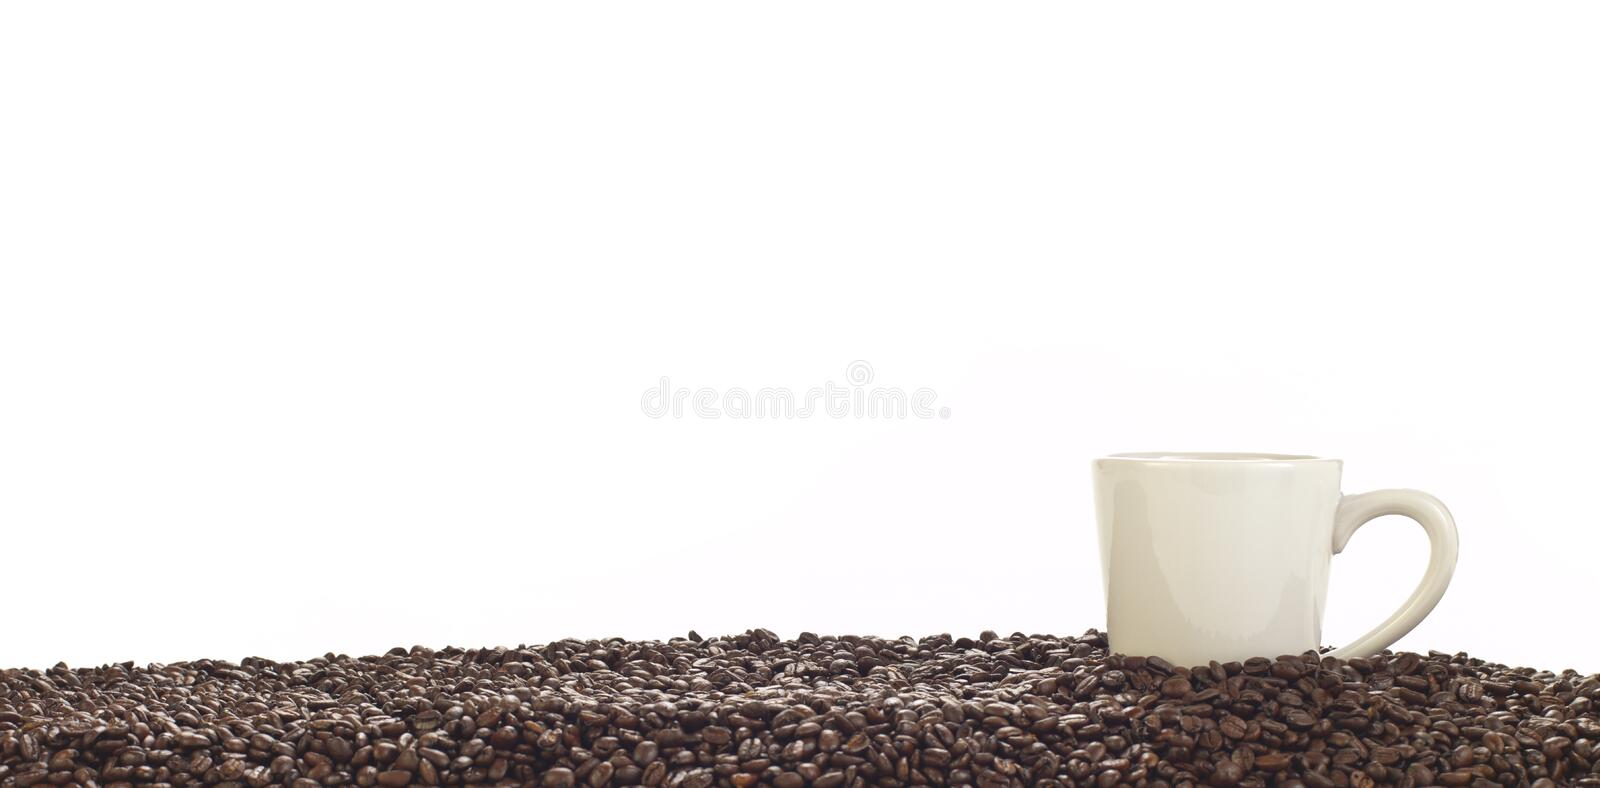 Download Panoramic Of Coffee Cup And Whole Beans Stock Image - Image: 25992925